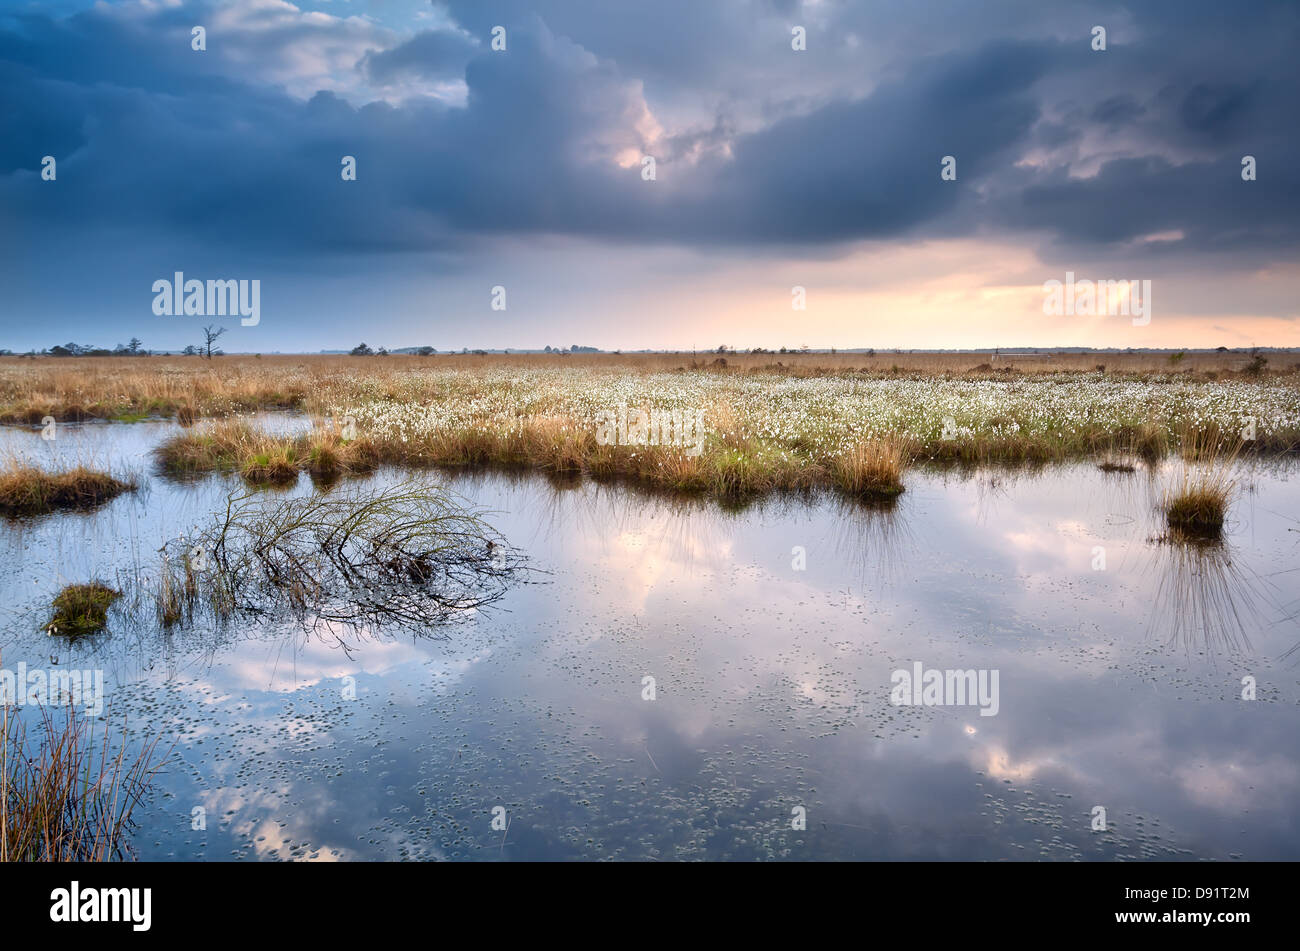 swamp with cottograss with reflected sky before sunset - Stock Image